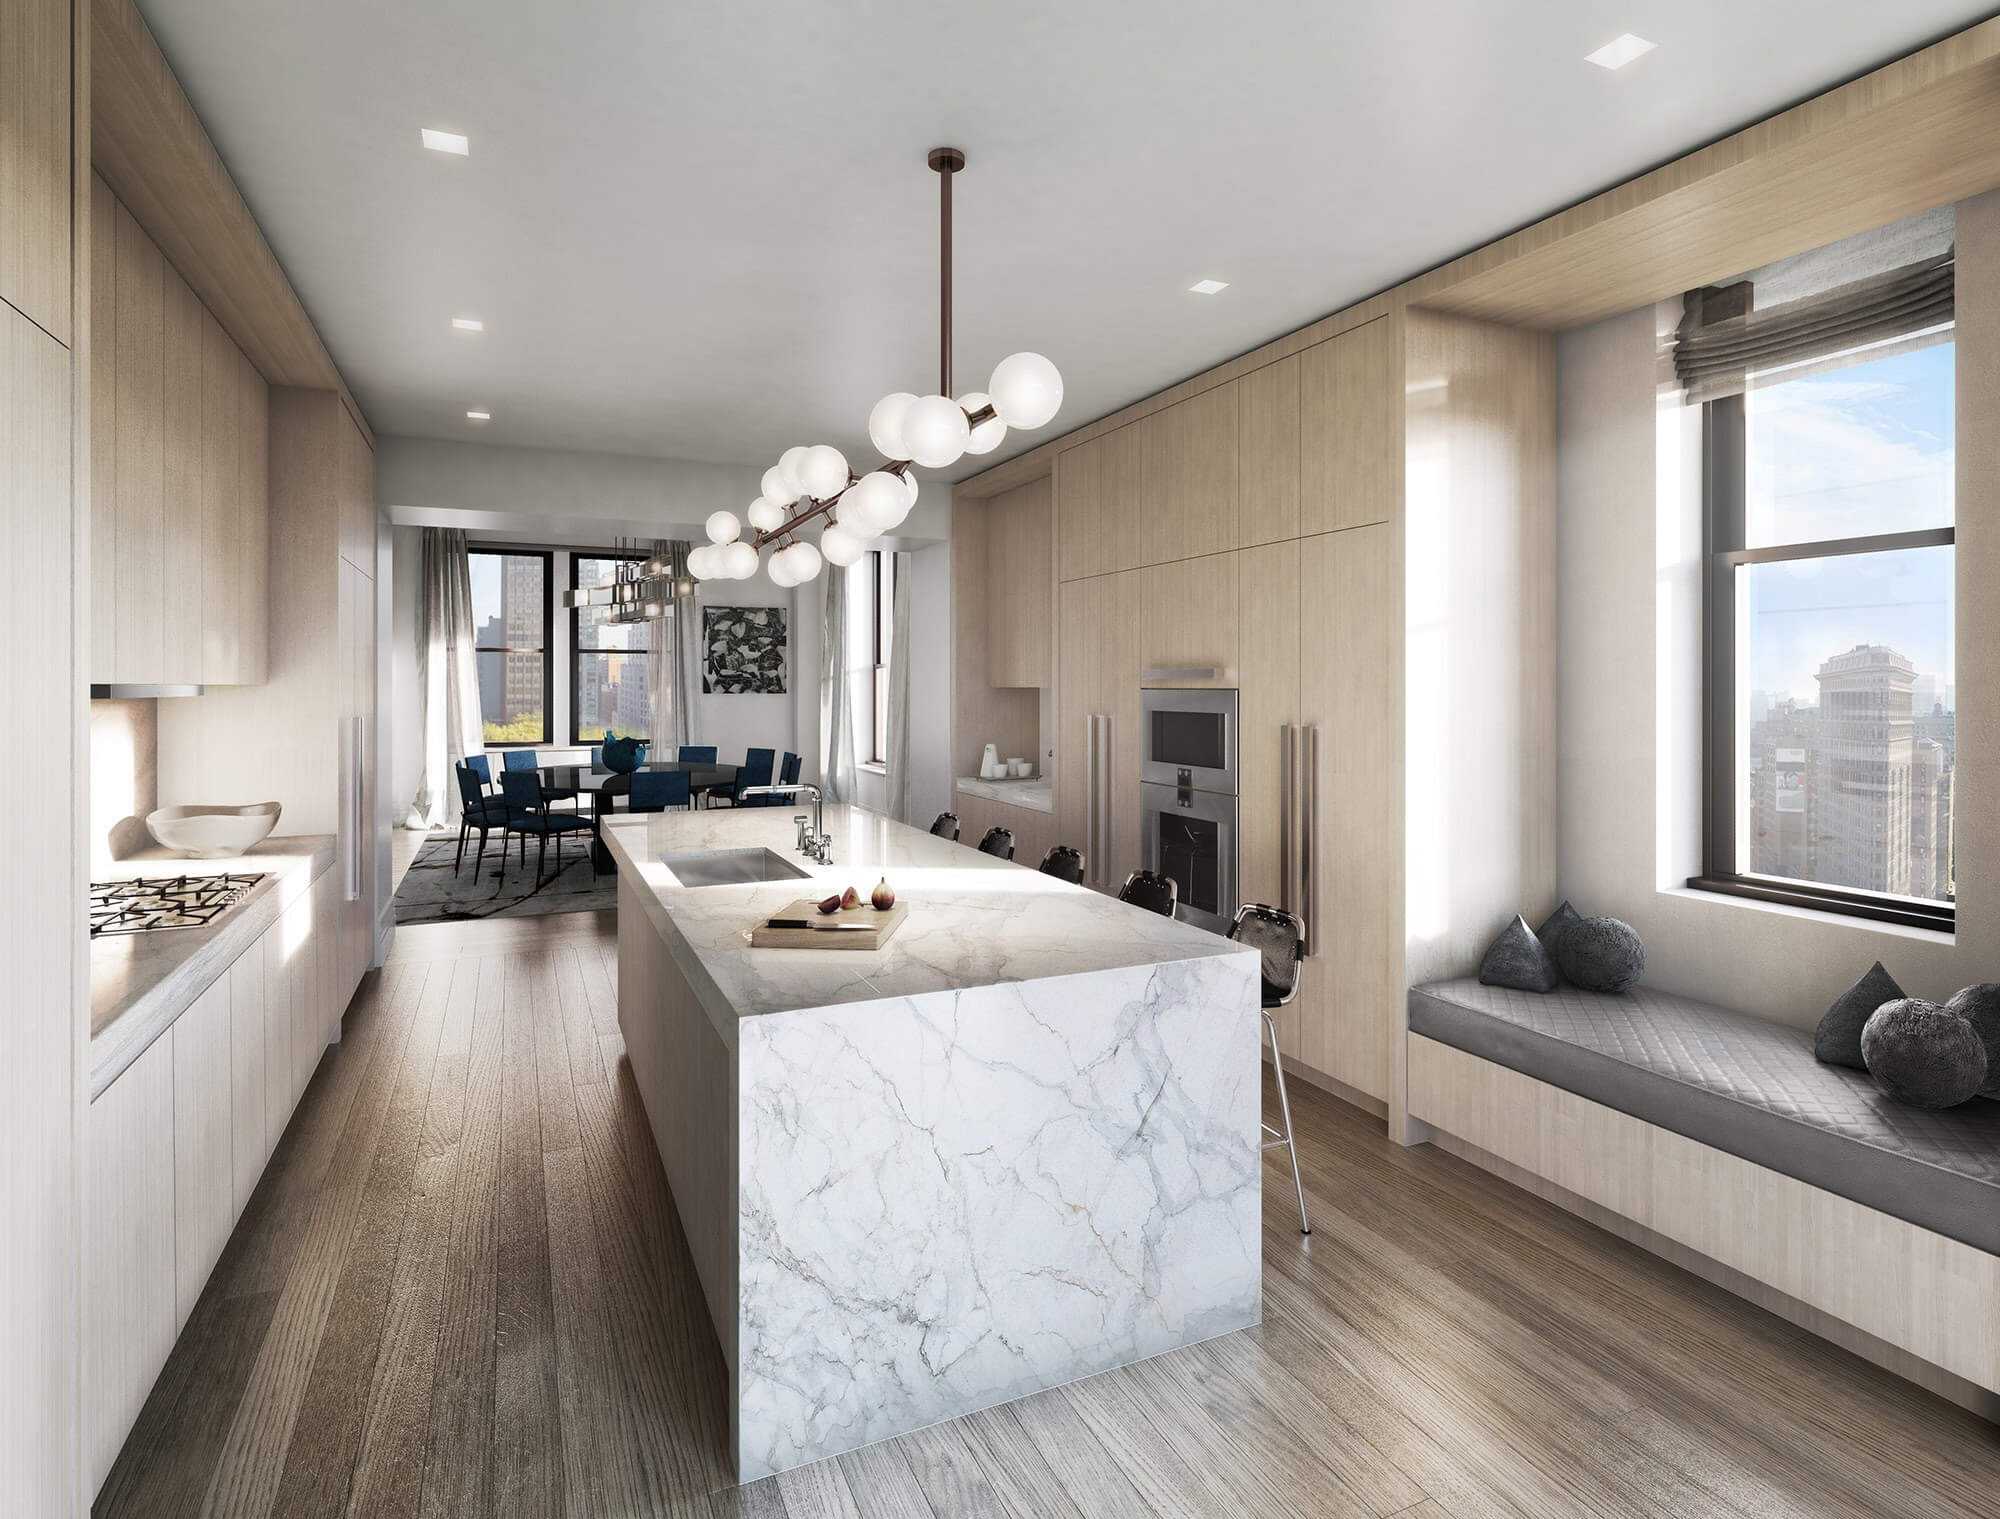 Madison-Equities-212-Fifth-Ave-Penthouse-5